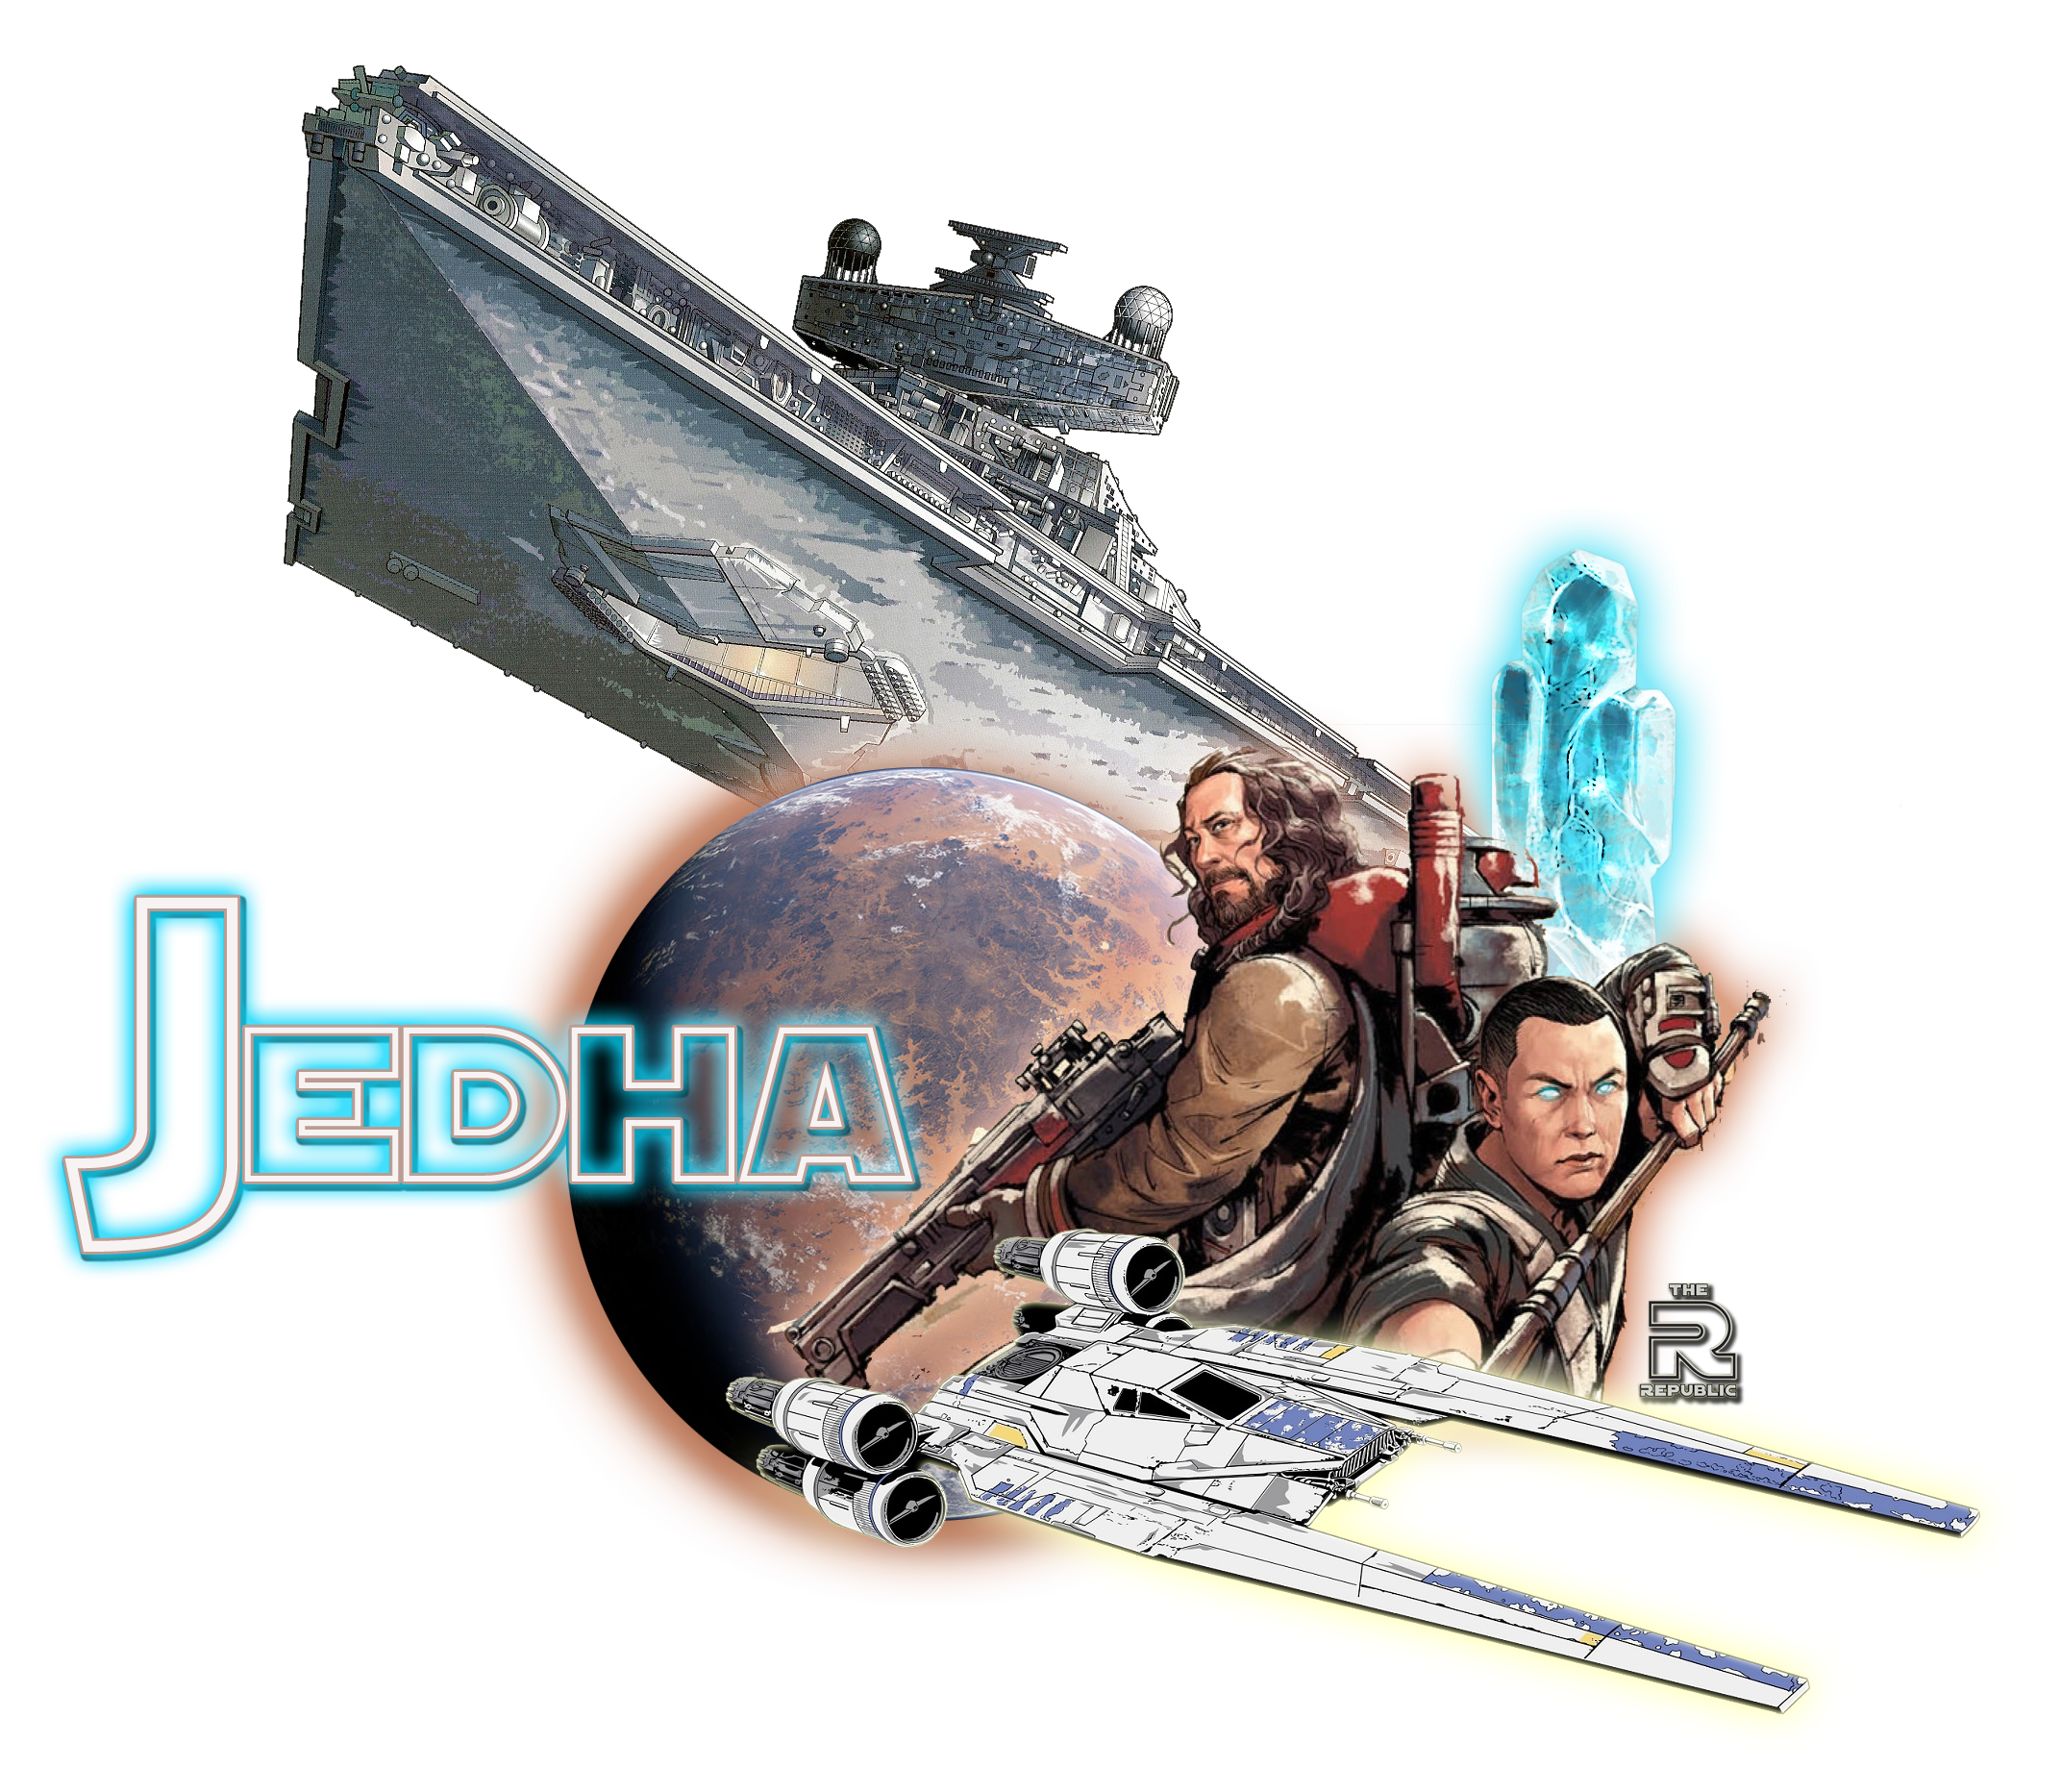 JEDHABANNER.png